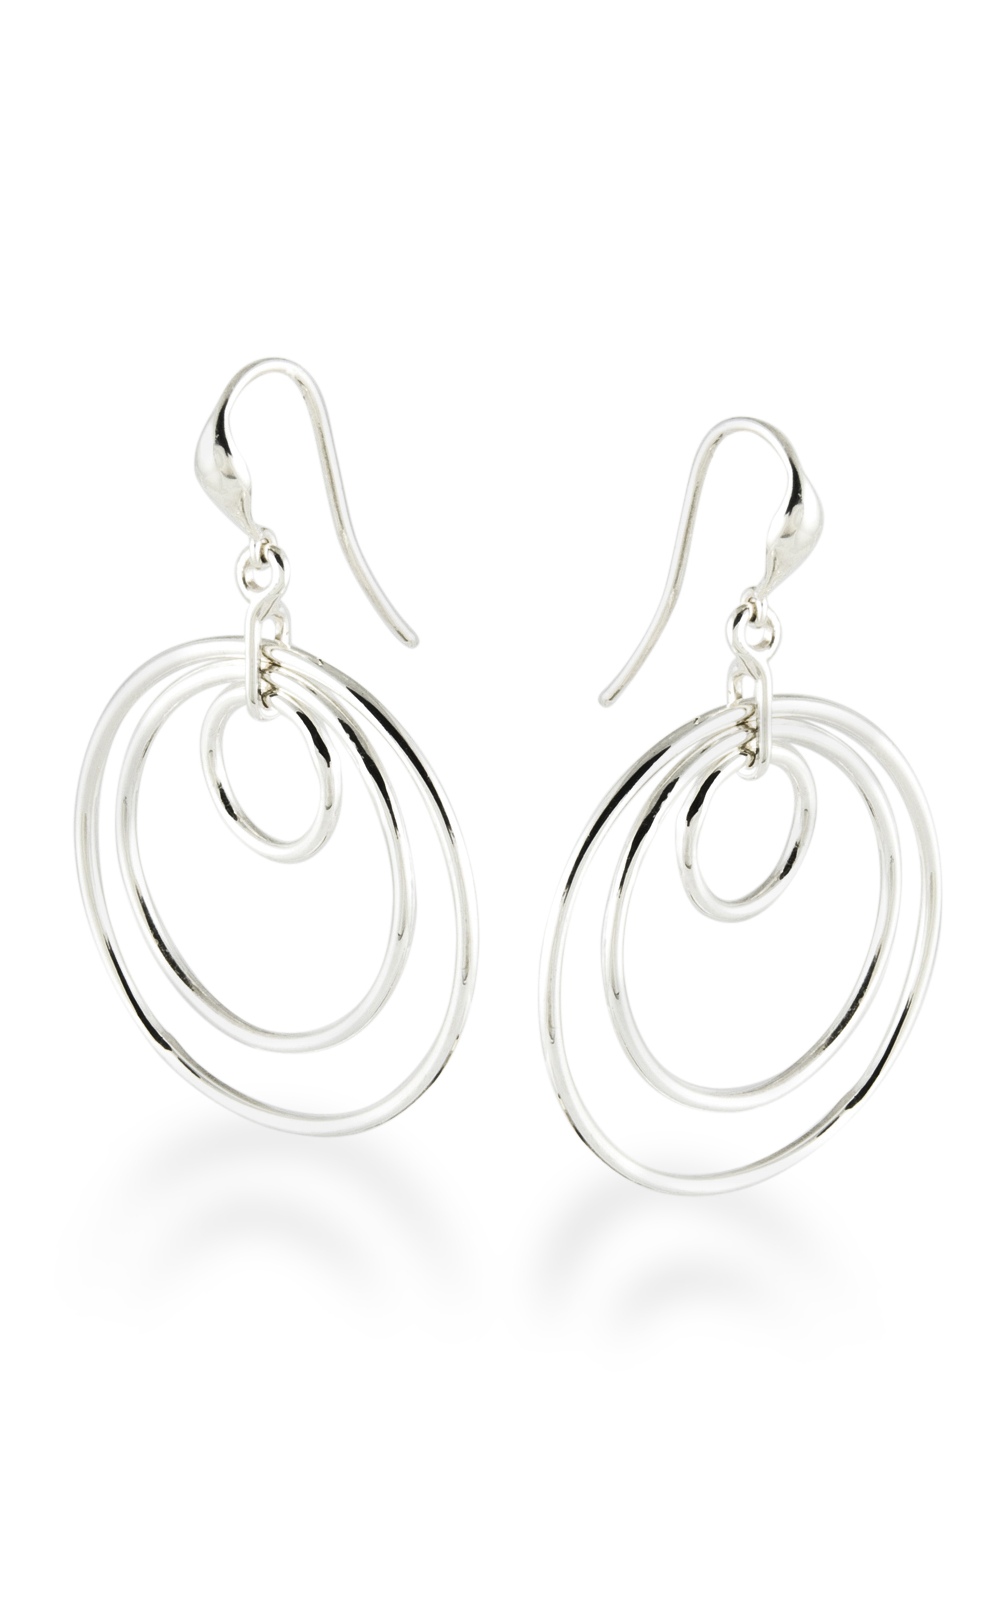 Zina Wired Earrings B1732 product image